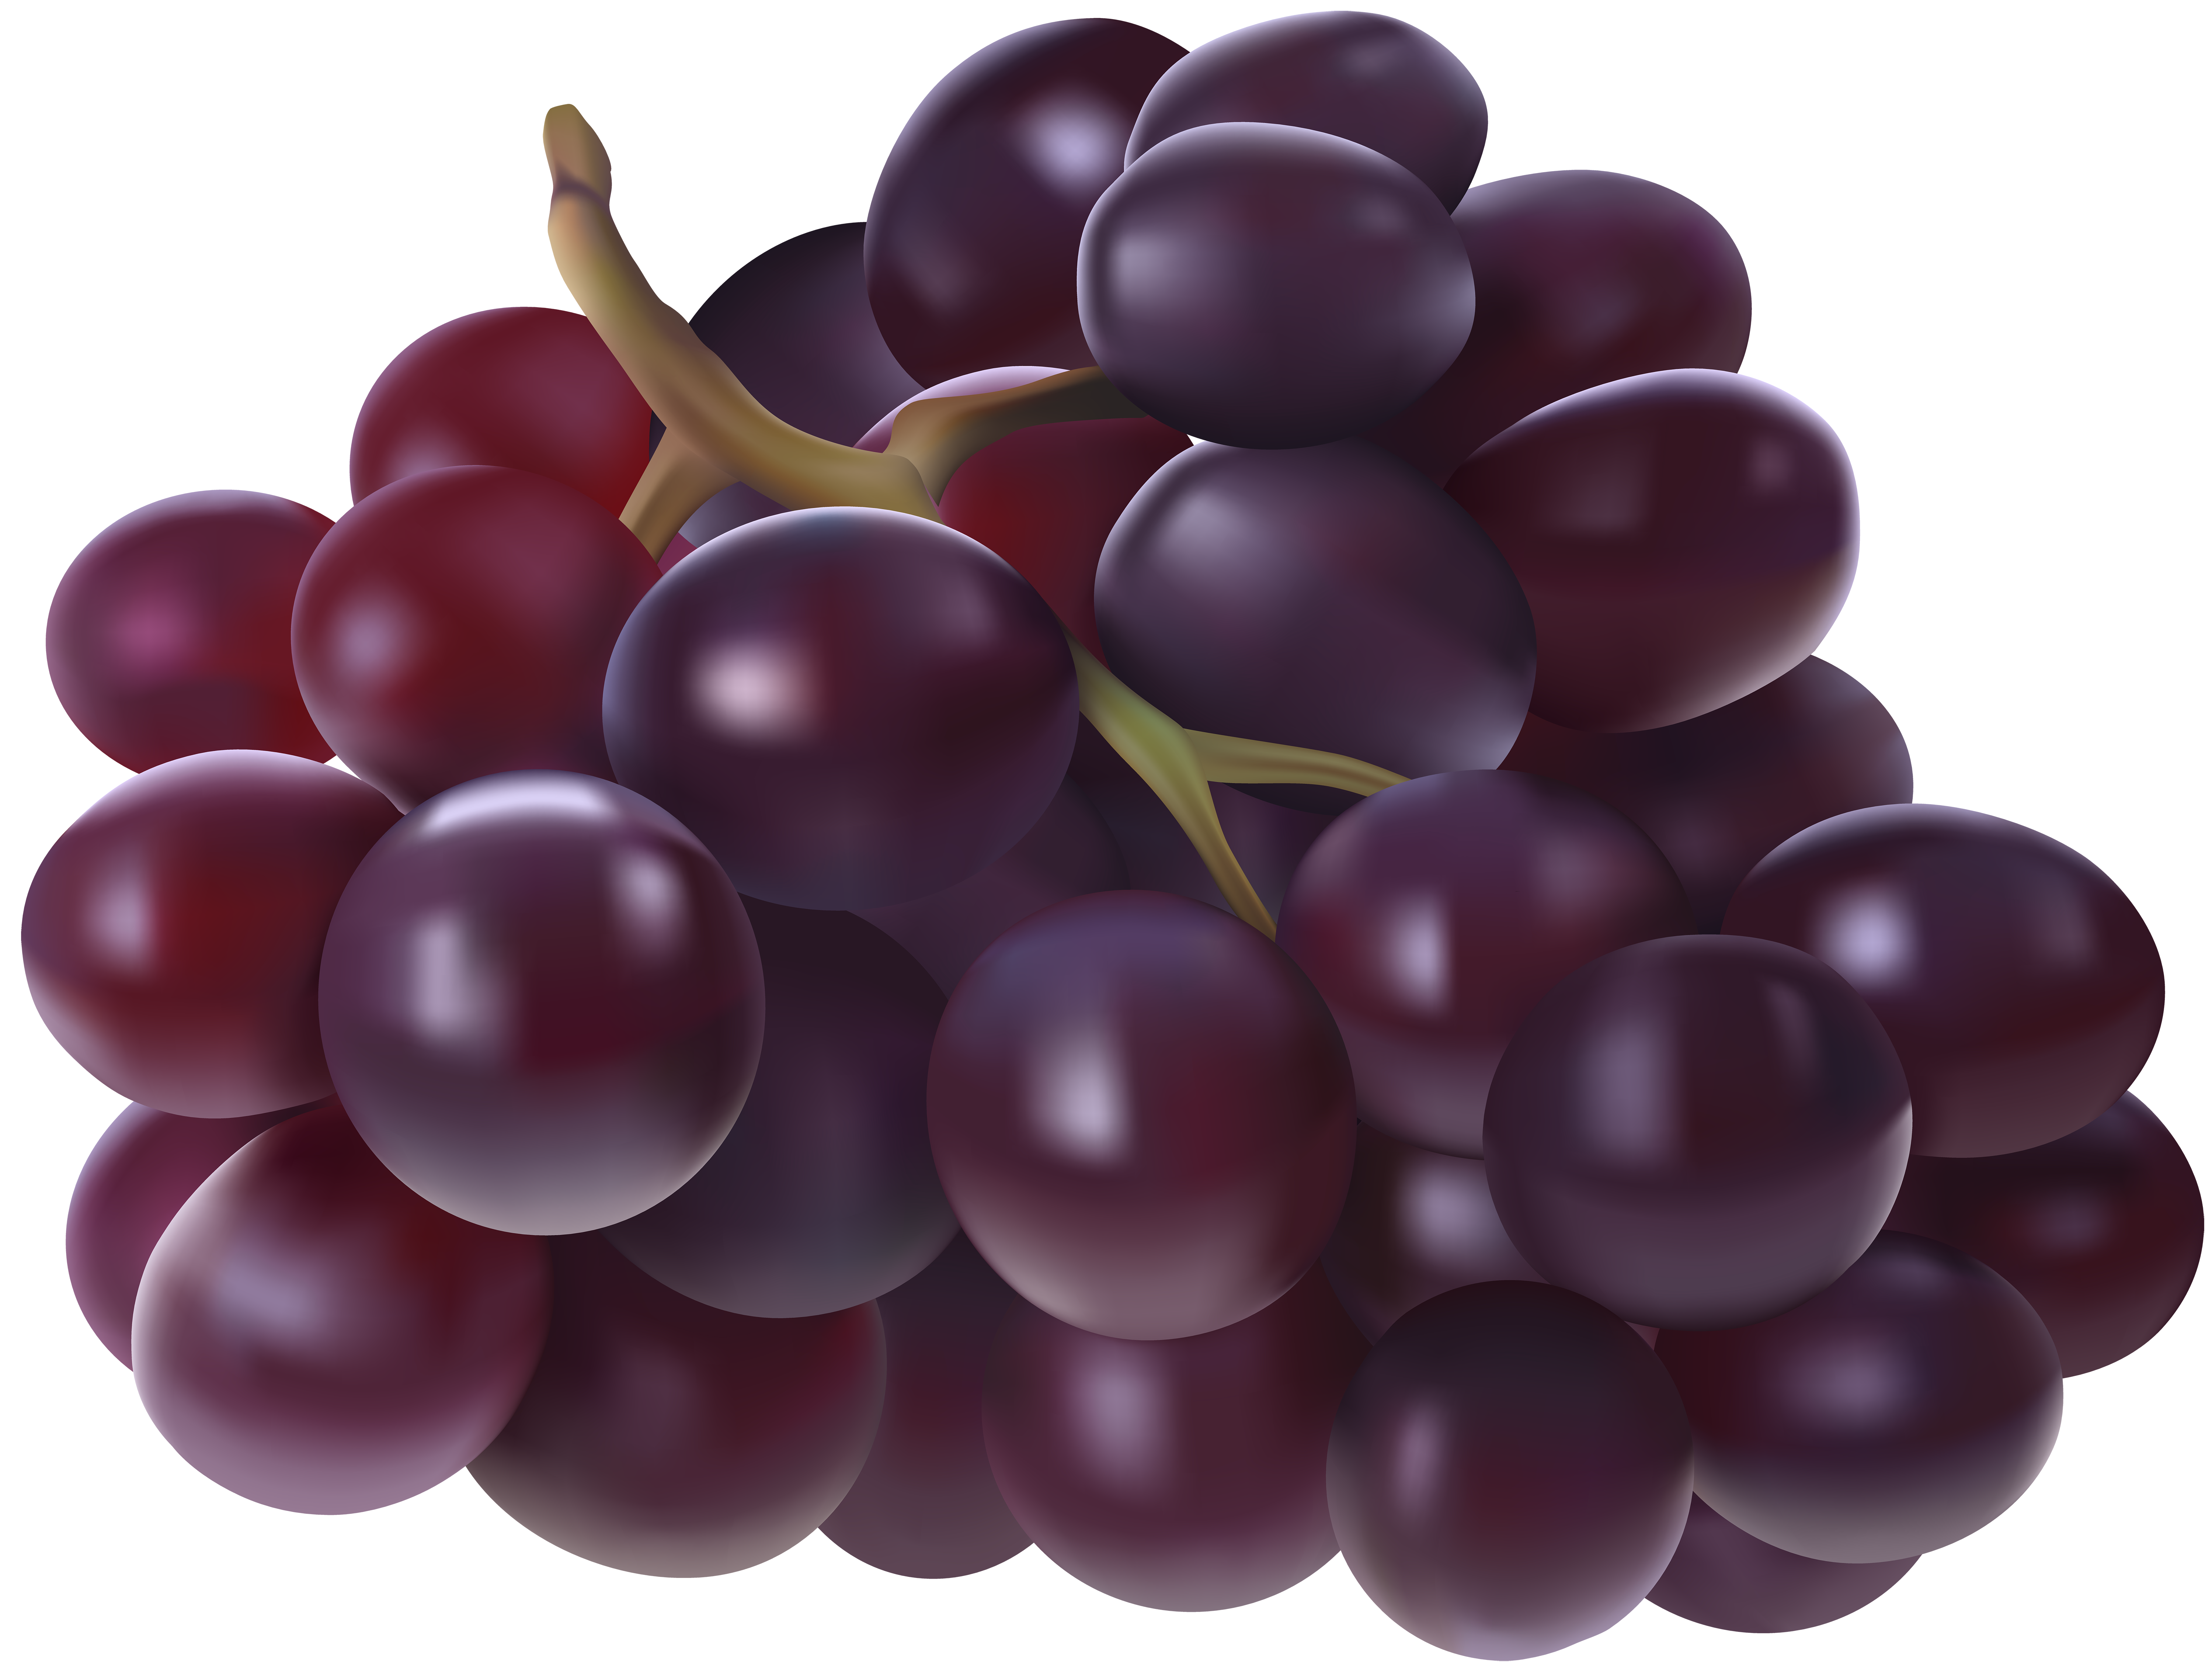 Png image gallery yopriceville. Transparent grapes high quality png